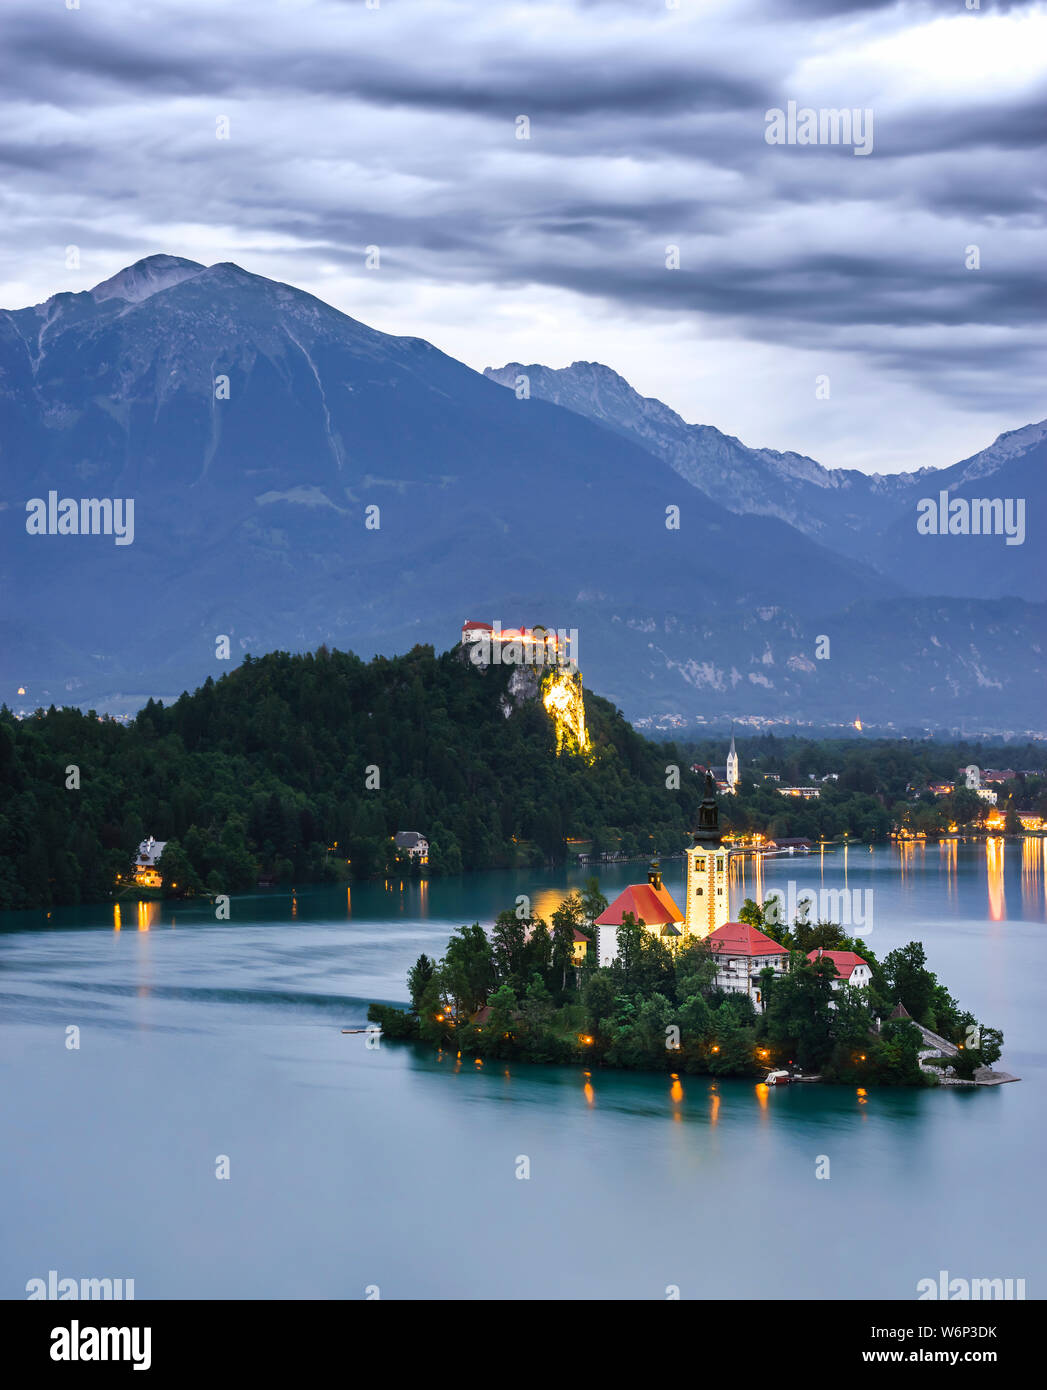 my journey to bled, seen from the top of a forest where you can see the church immersed in the lake Stock Photo